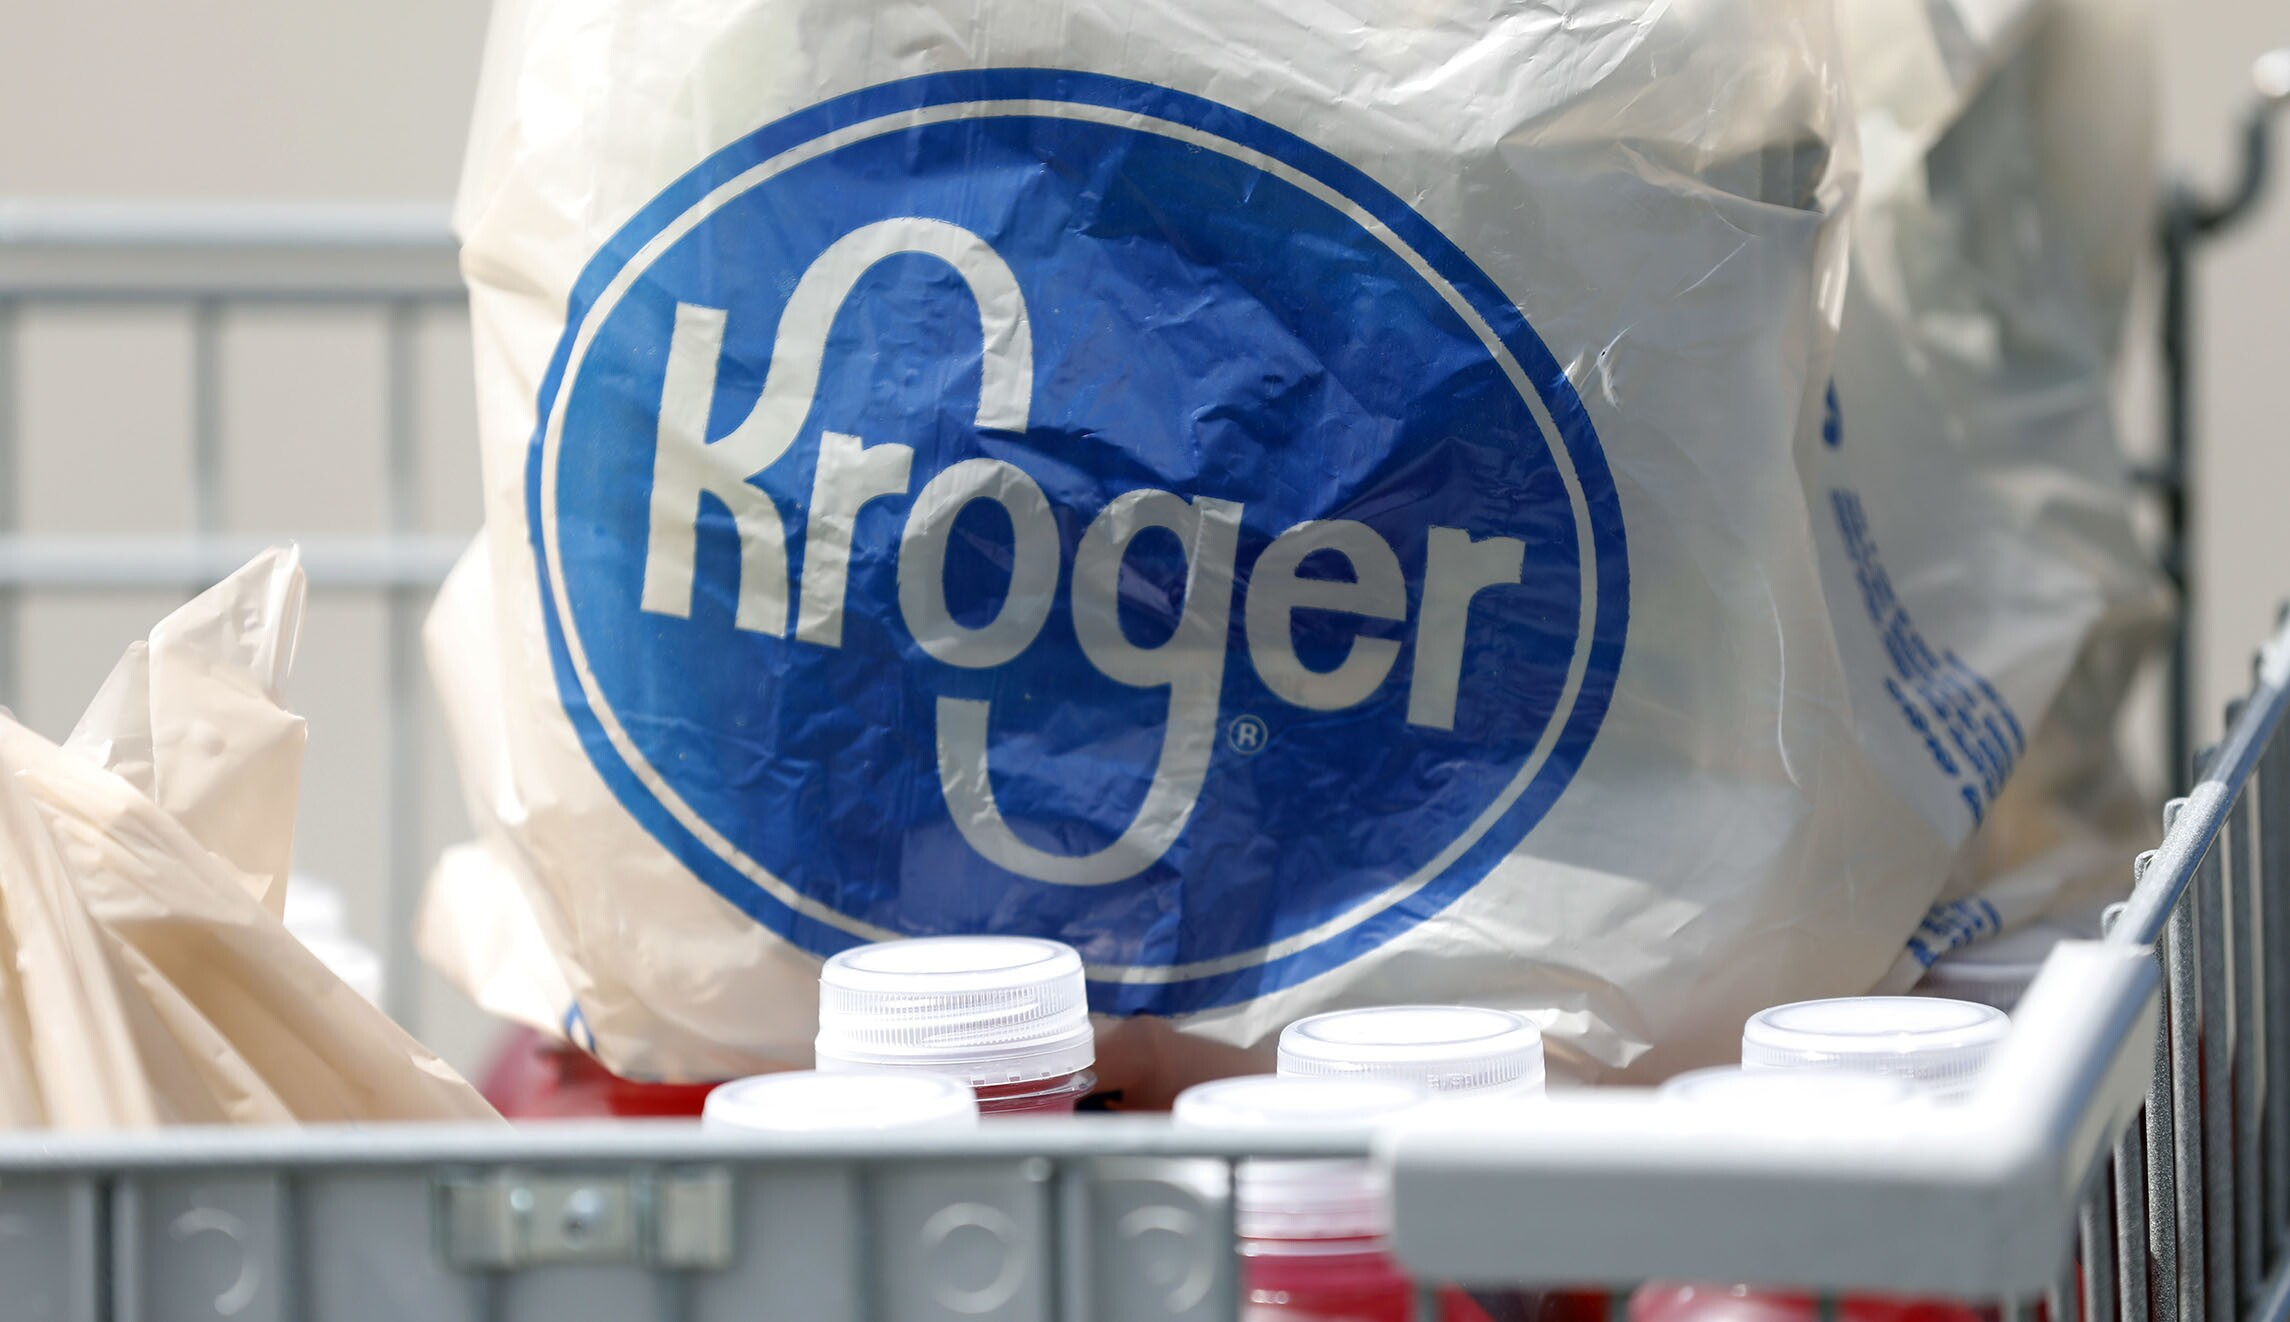 No, Kroger grocery stores do not sell guns